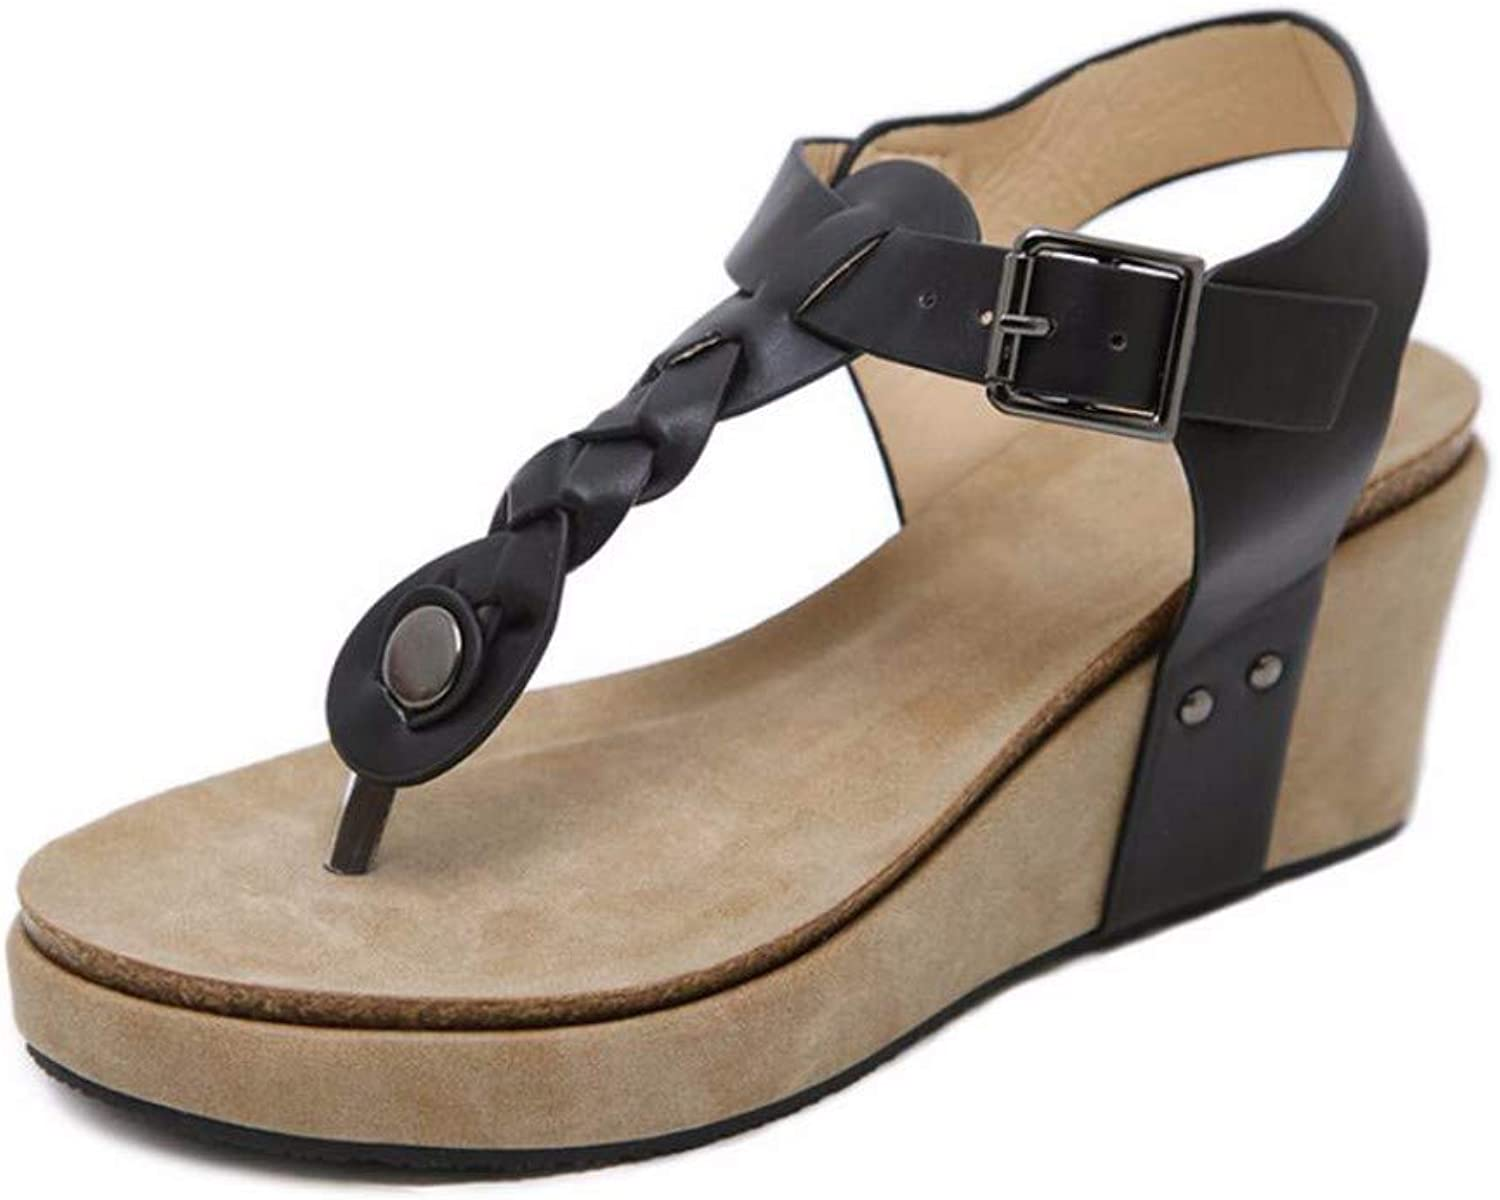 ZPSPZ sandals womens Comfortable Large-Sized Summer Open-Toed Sandals with Sloping Heels and Herringbone Buckles for Women in Europe and America